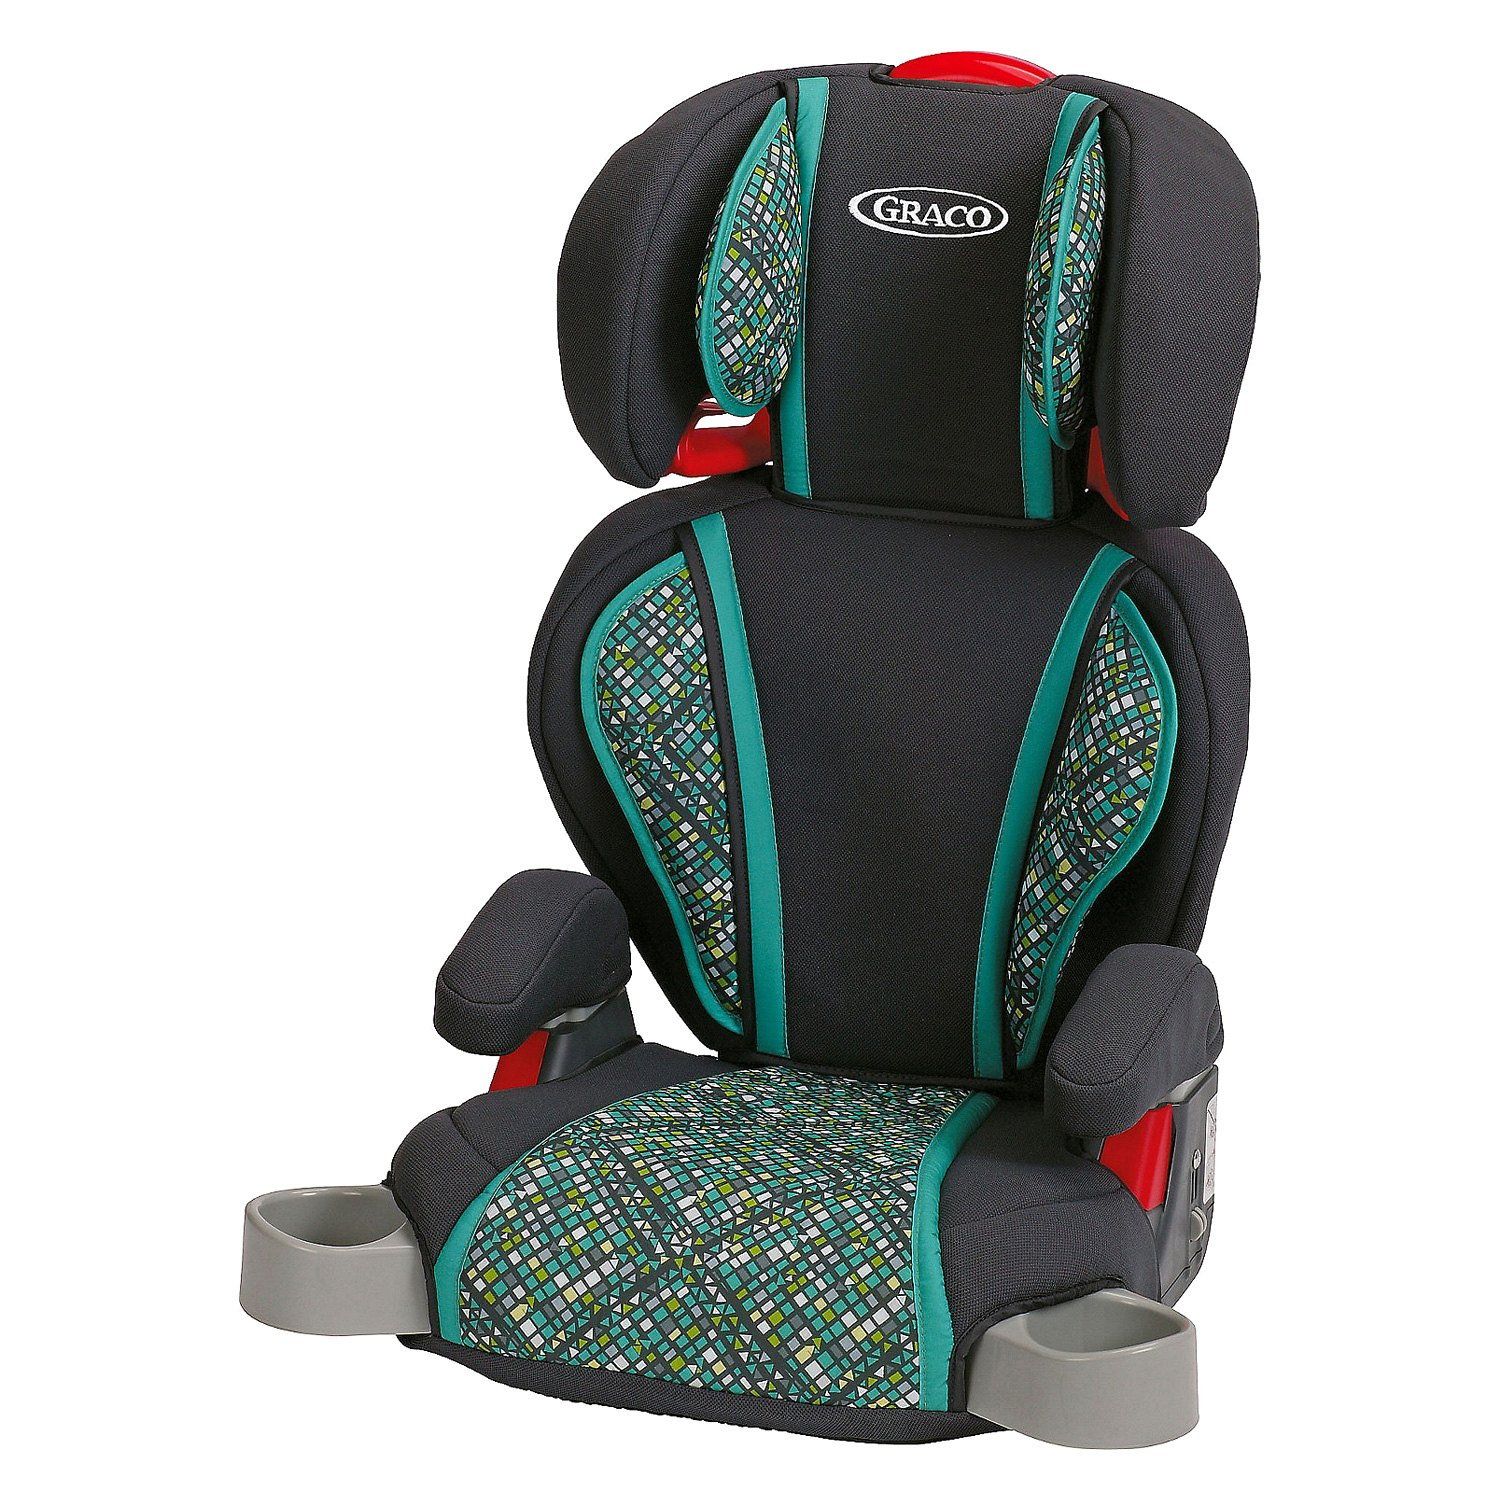 graco baby 1834909 highback turbobooster mosaic style car seat rh carid com graco turbobooster owners manual Graco Seat